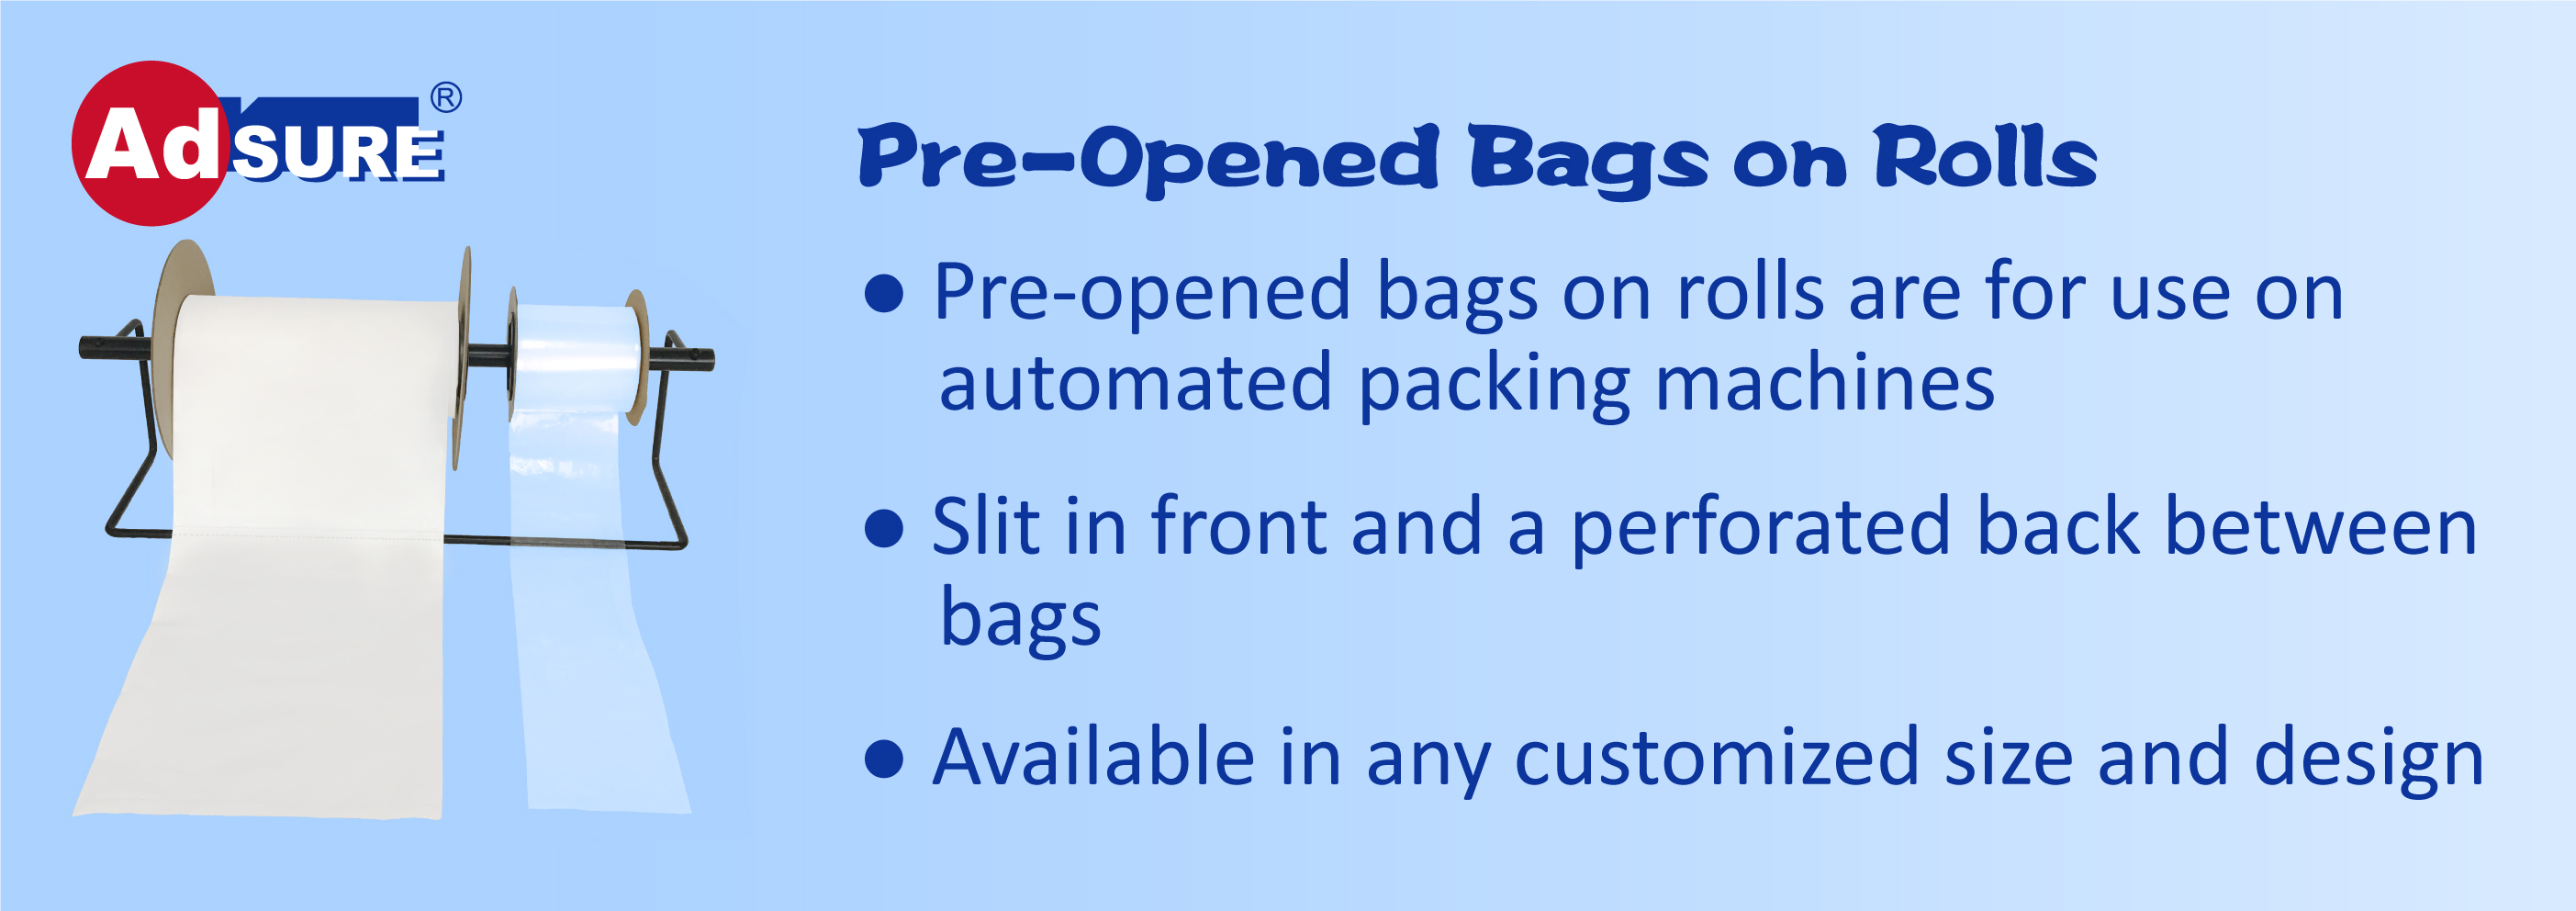 Feature of Auto Pre Opened Bags on Rolls